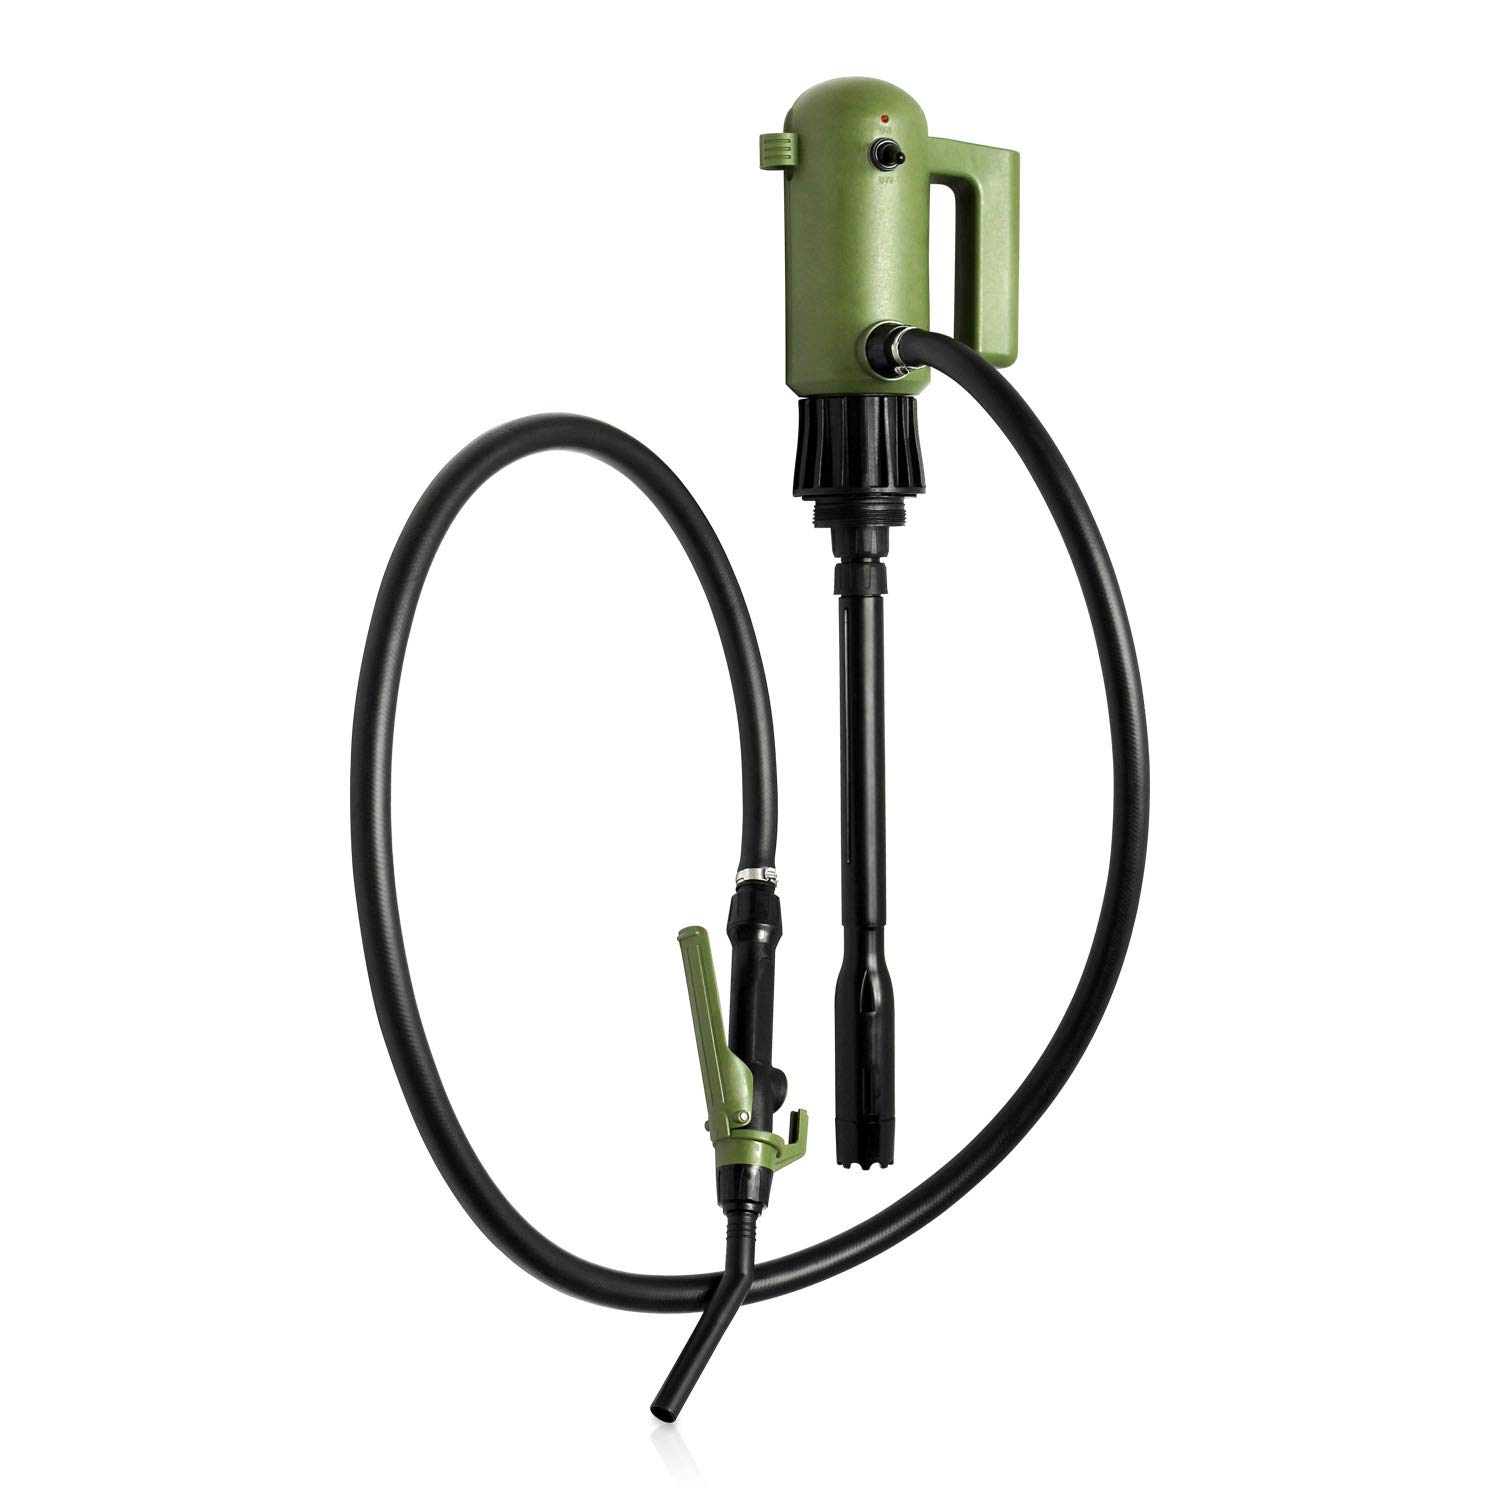 1st Introducing Electric Pail Pump with Lid (fit Most Pail Container) for Water Gasoline Diesel DEF ADBlue w/ 74 inch Long Heavy Duty Hose up to 4.5 GPM